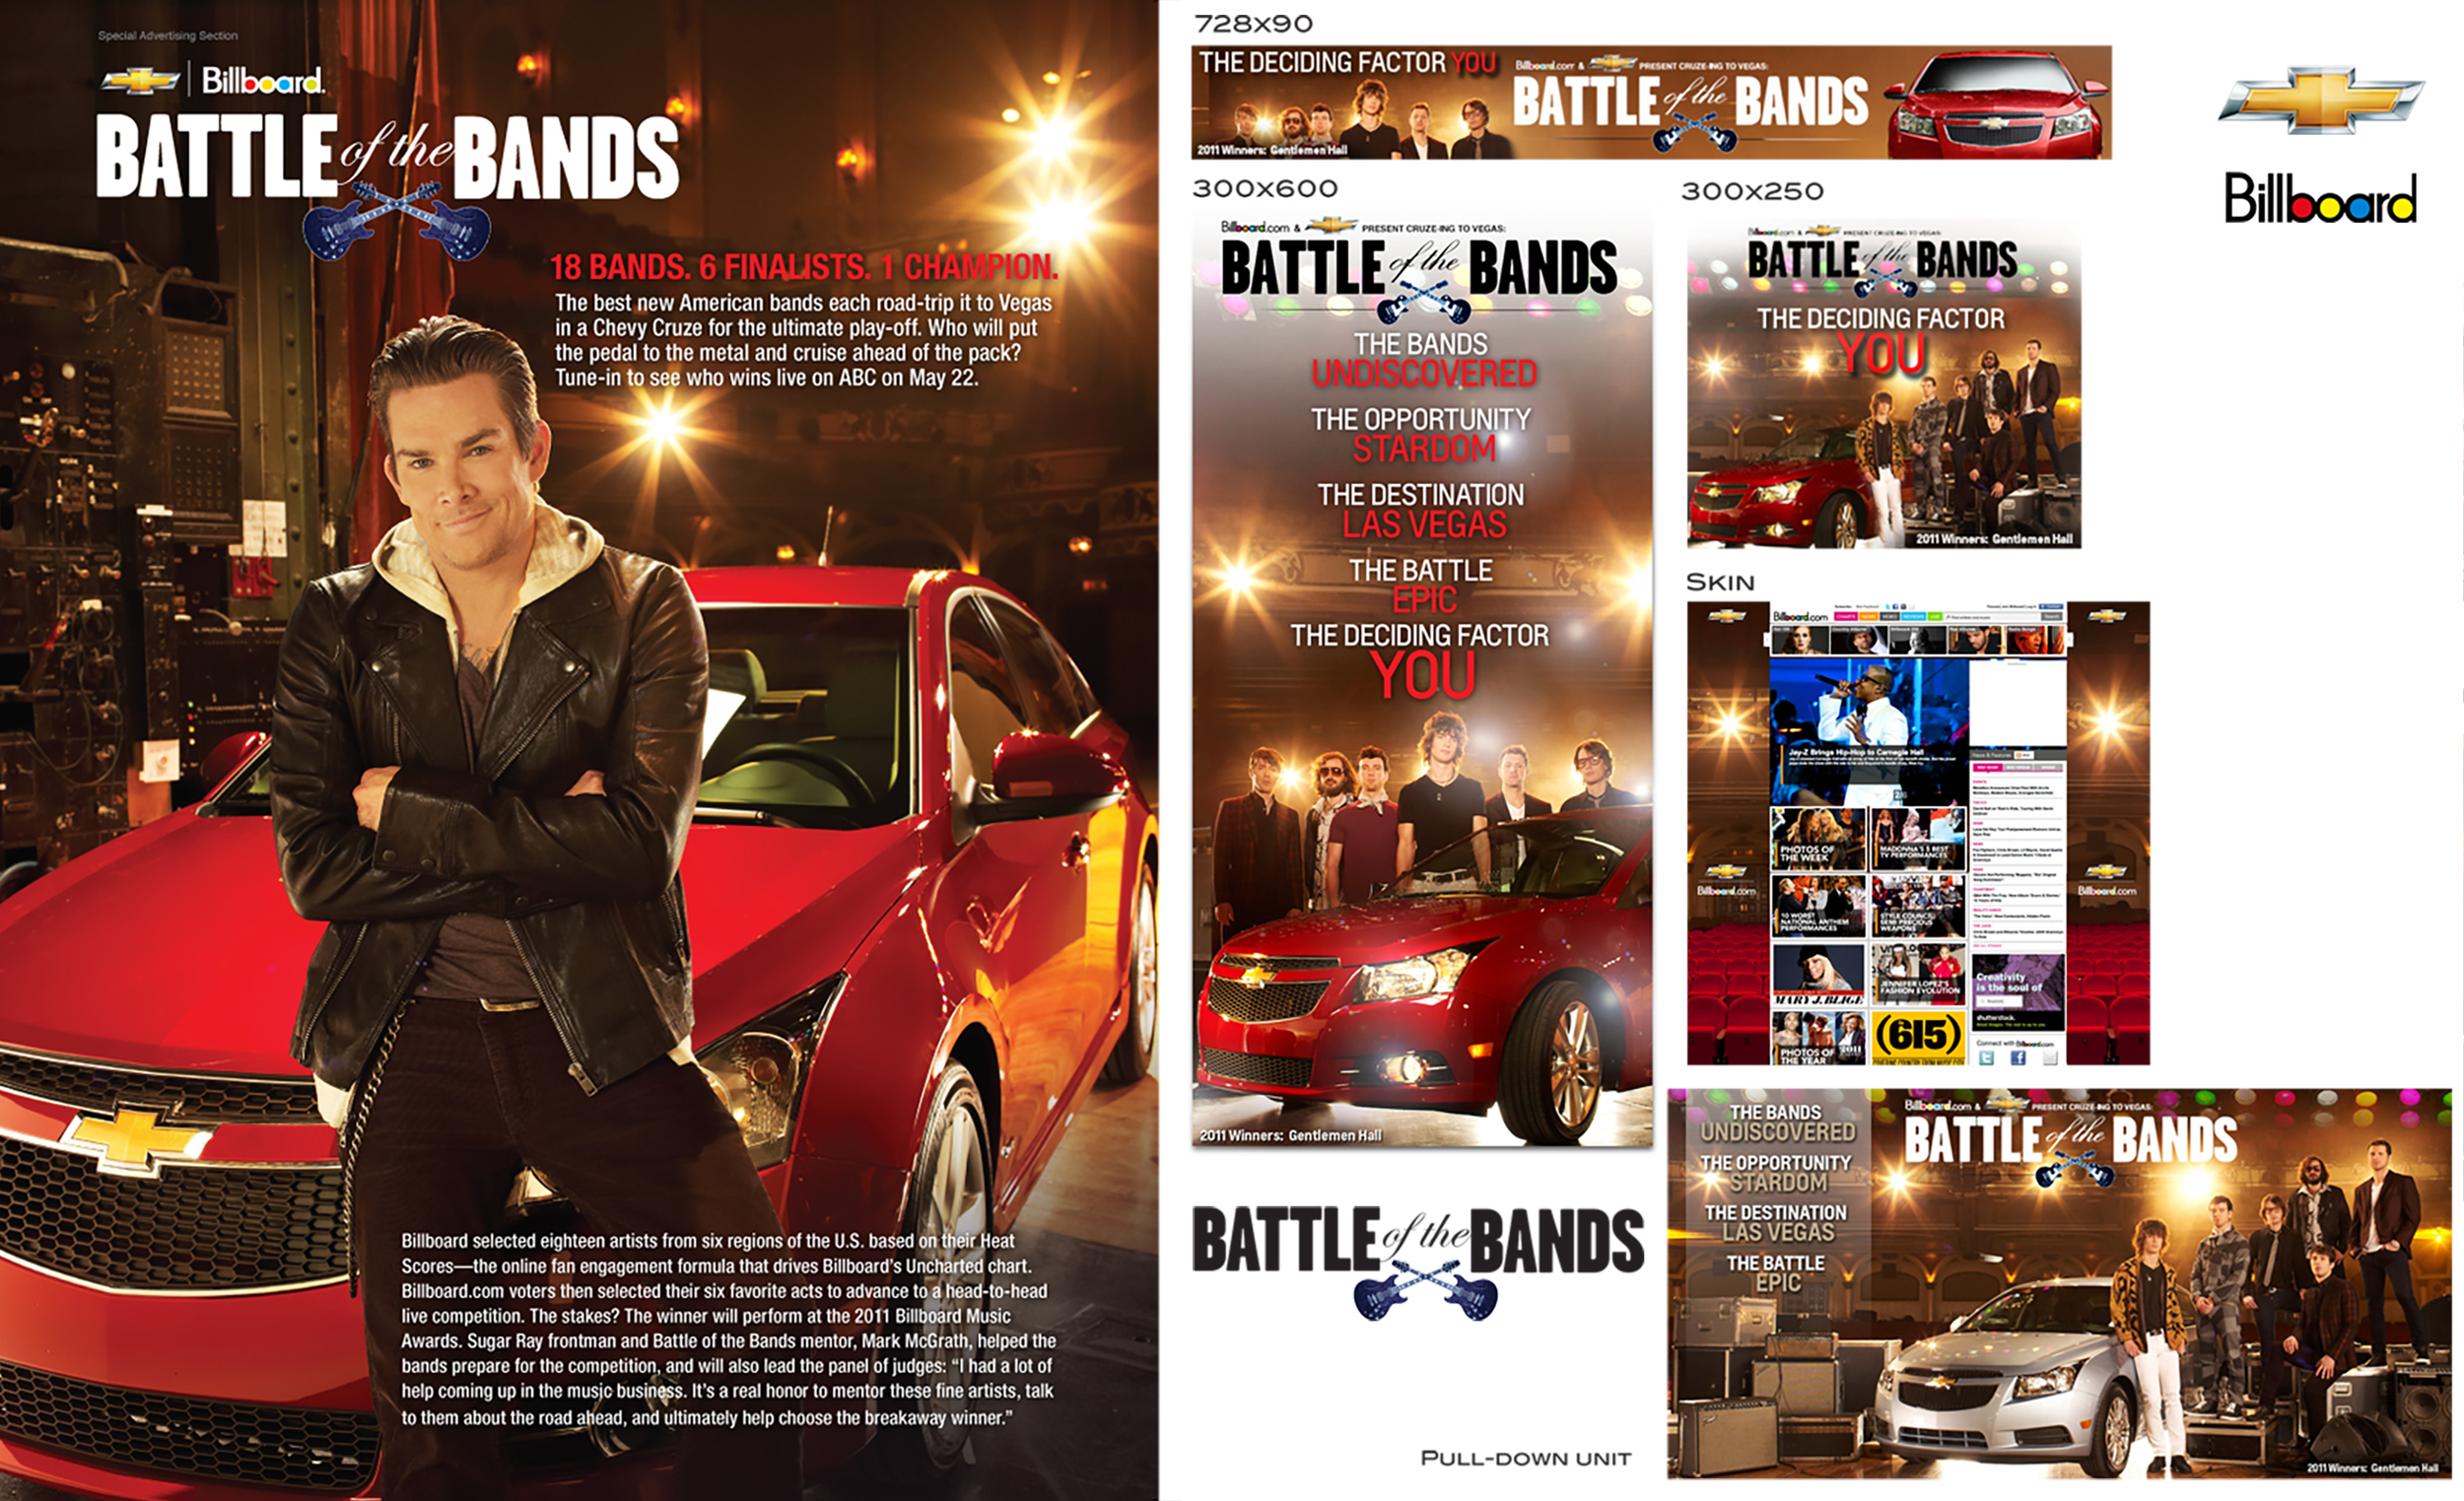 Billboard battle of bands campaign